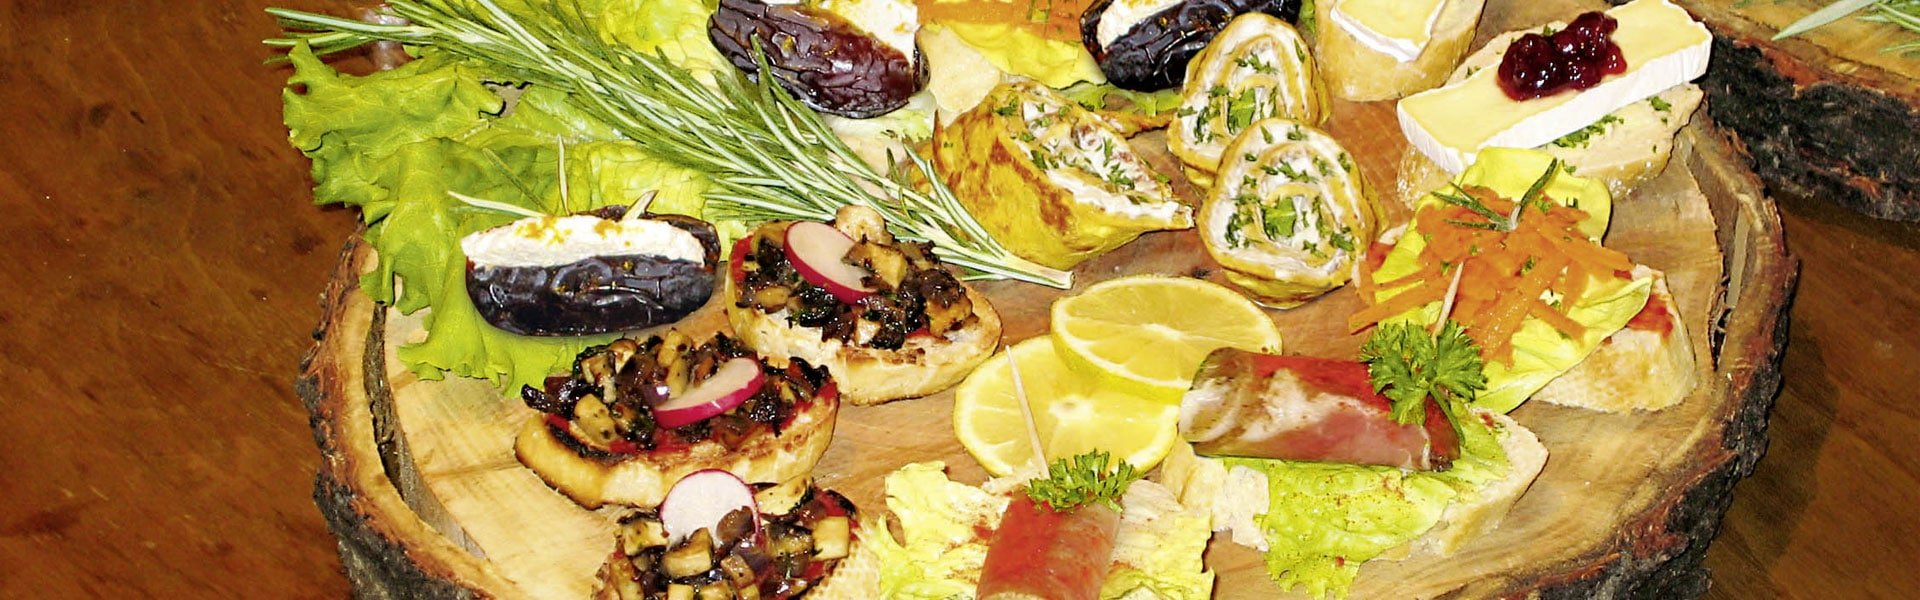 BioTop_Catering_Canapes